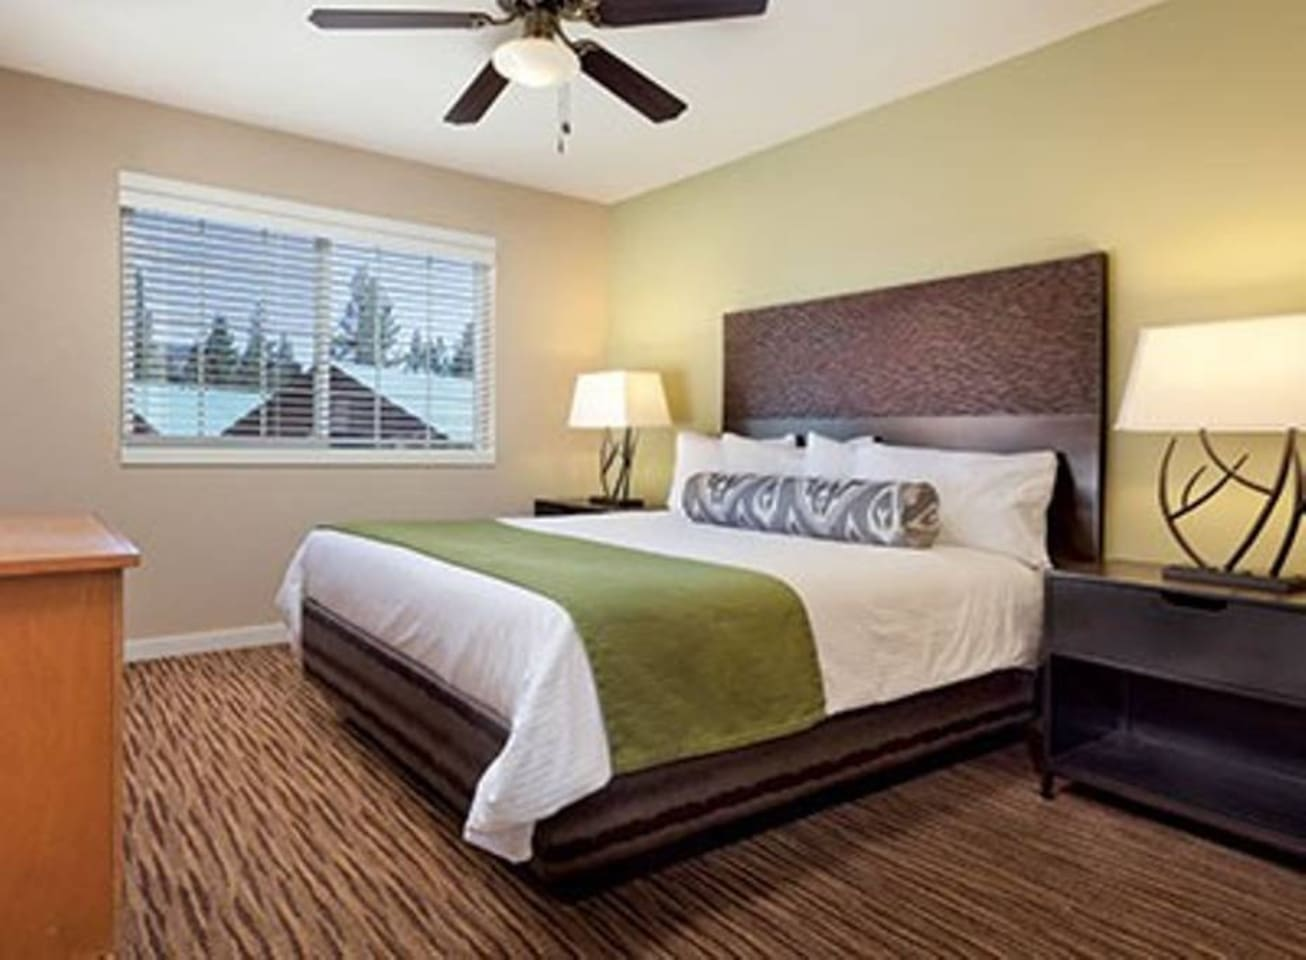 Master bedroom has a comfortable king size bed and a full bath.